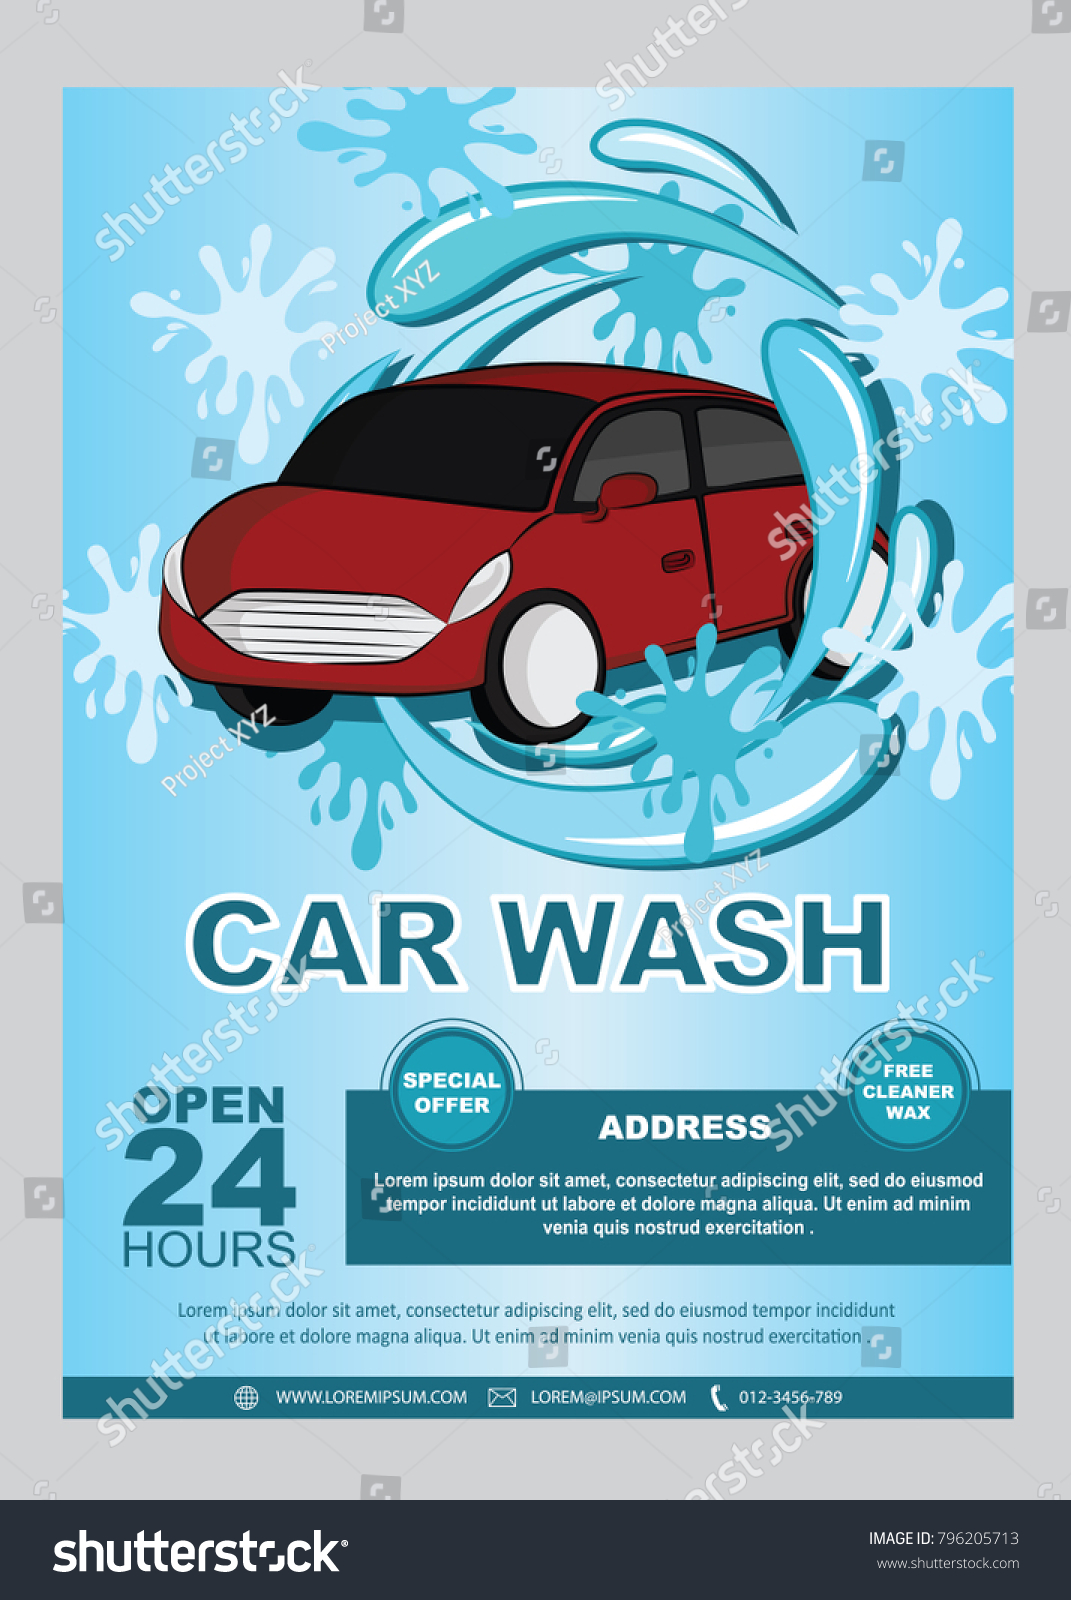 Car Wash Flyers Decorated Car Icon Stock Vector Royalty Free